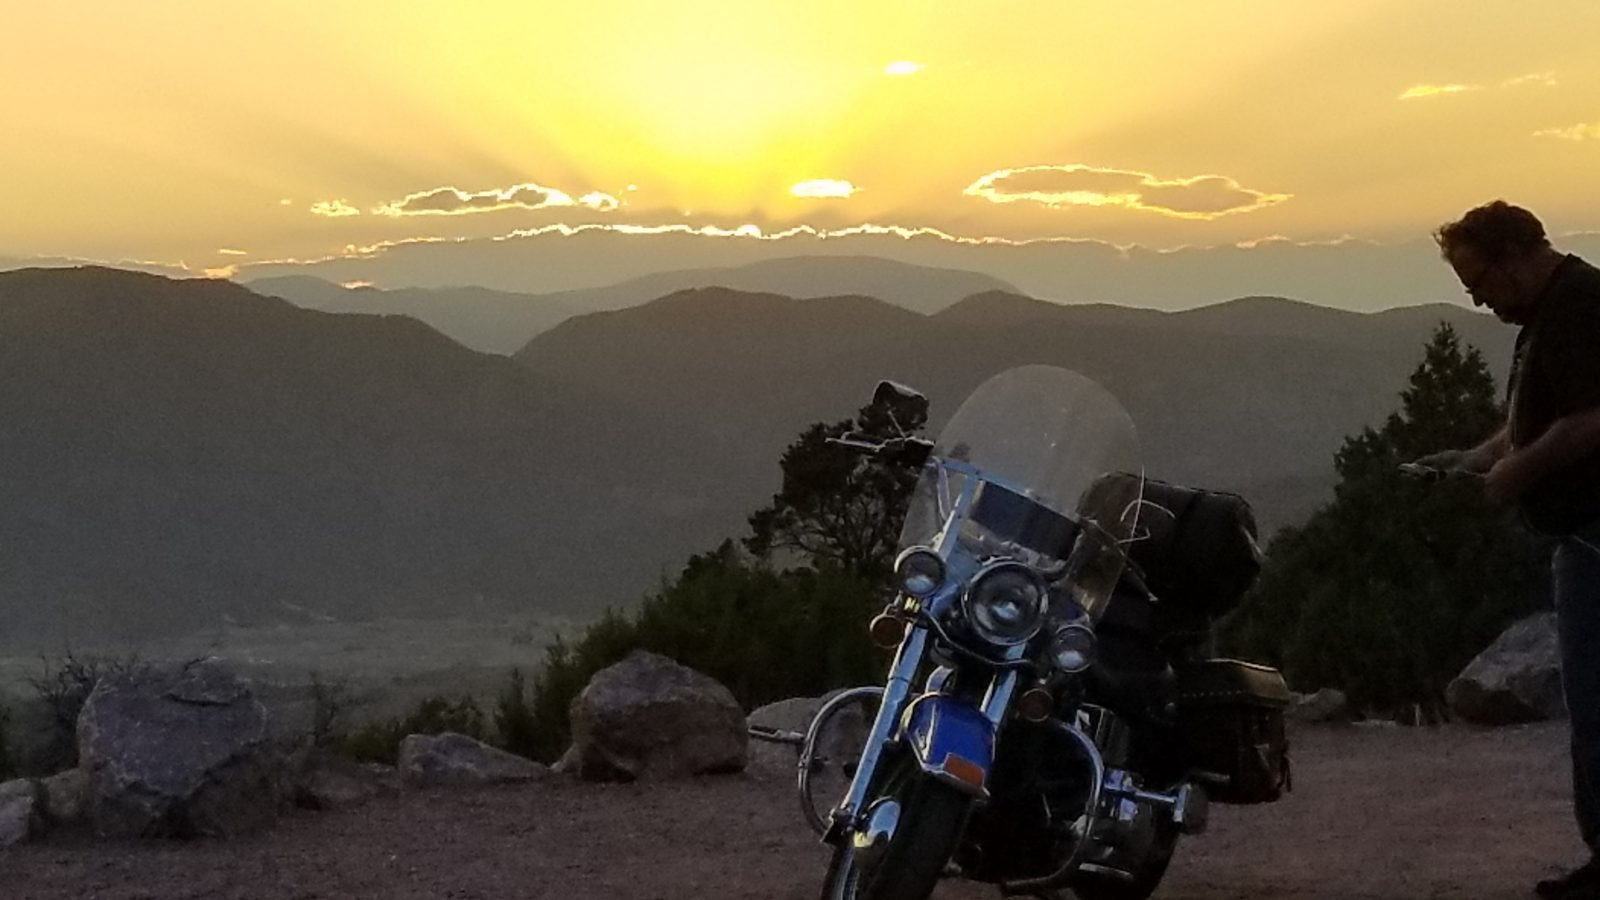 A Motorcycle Ride through the Wet Mountain Valley